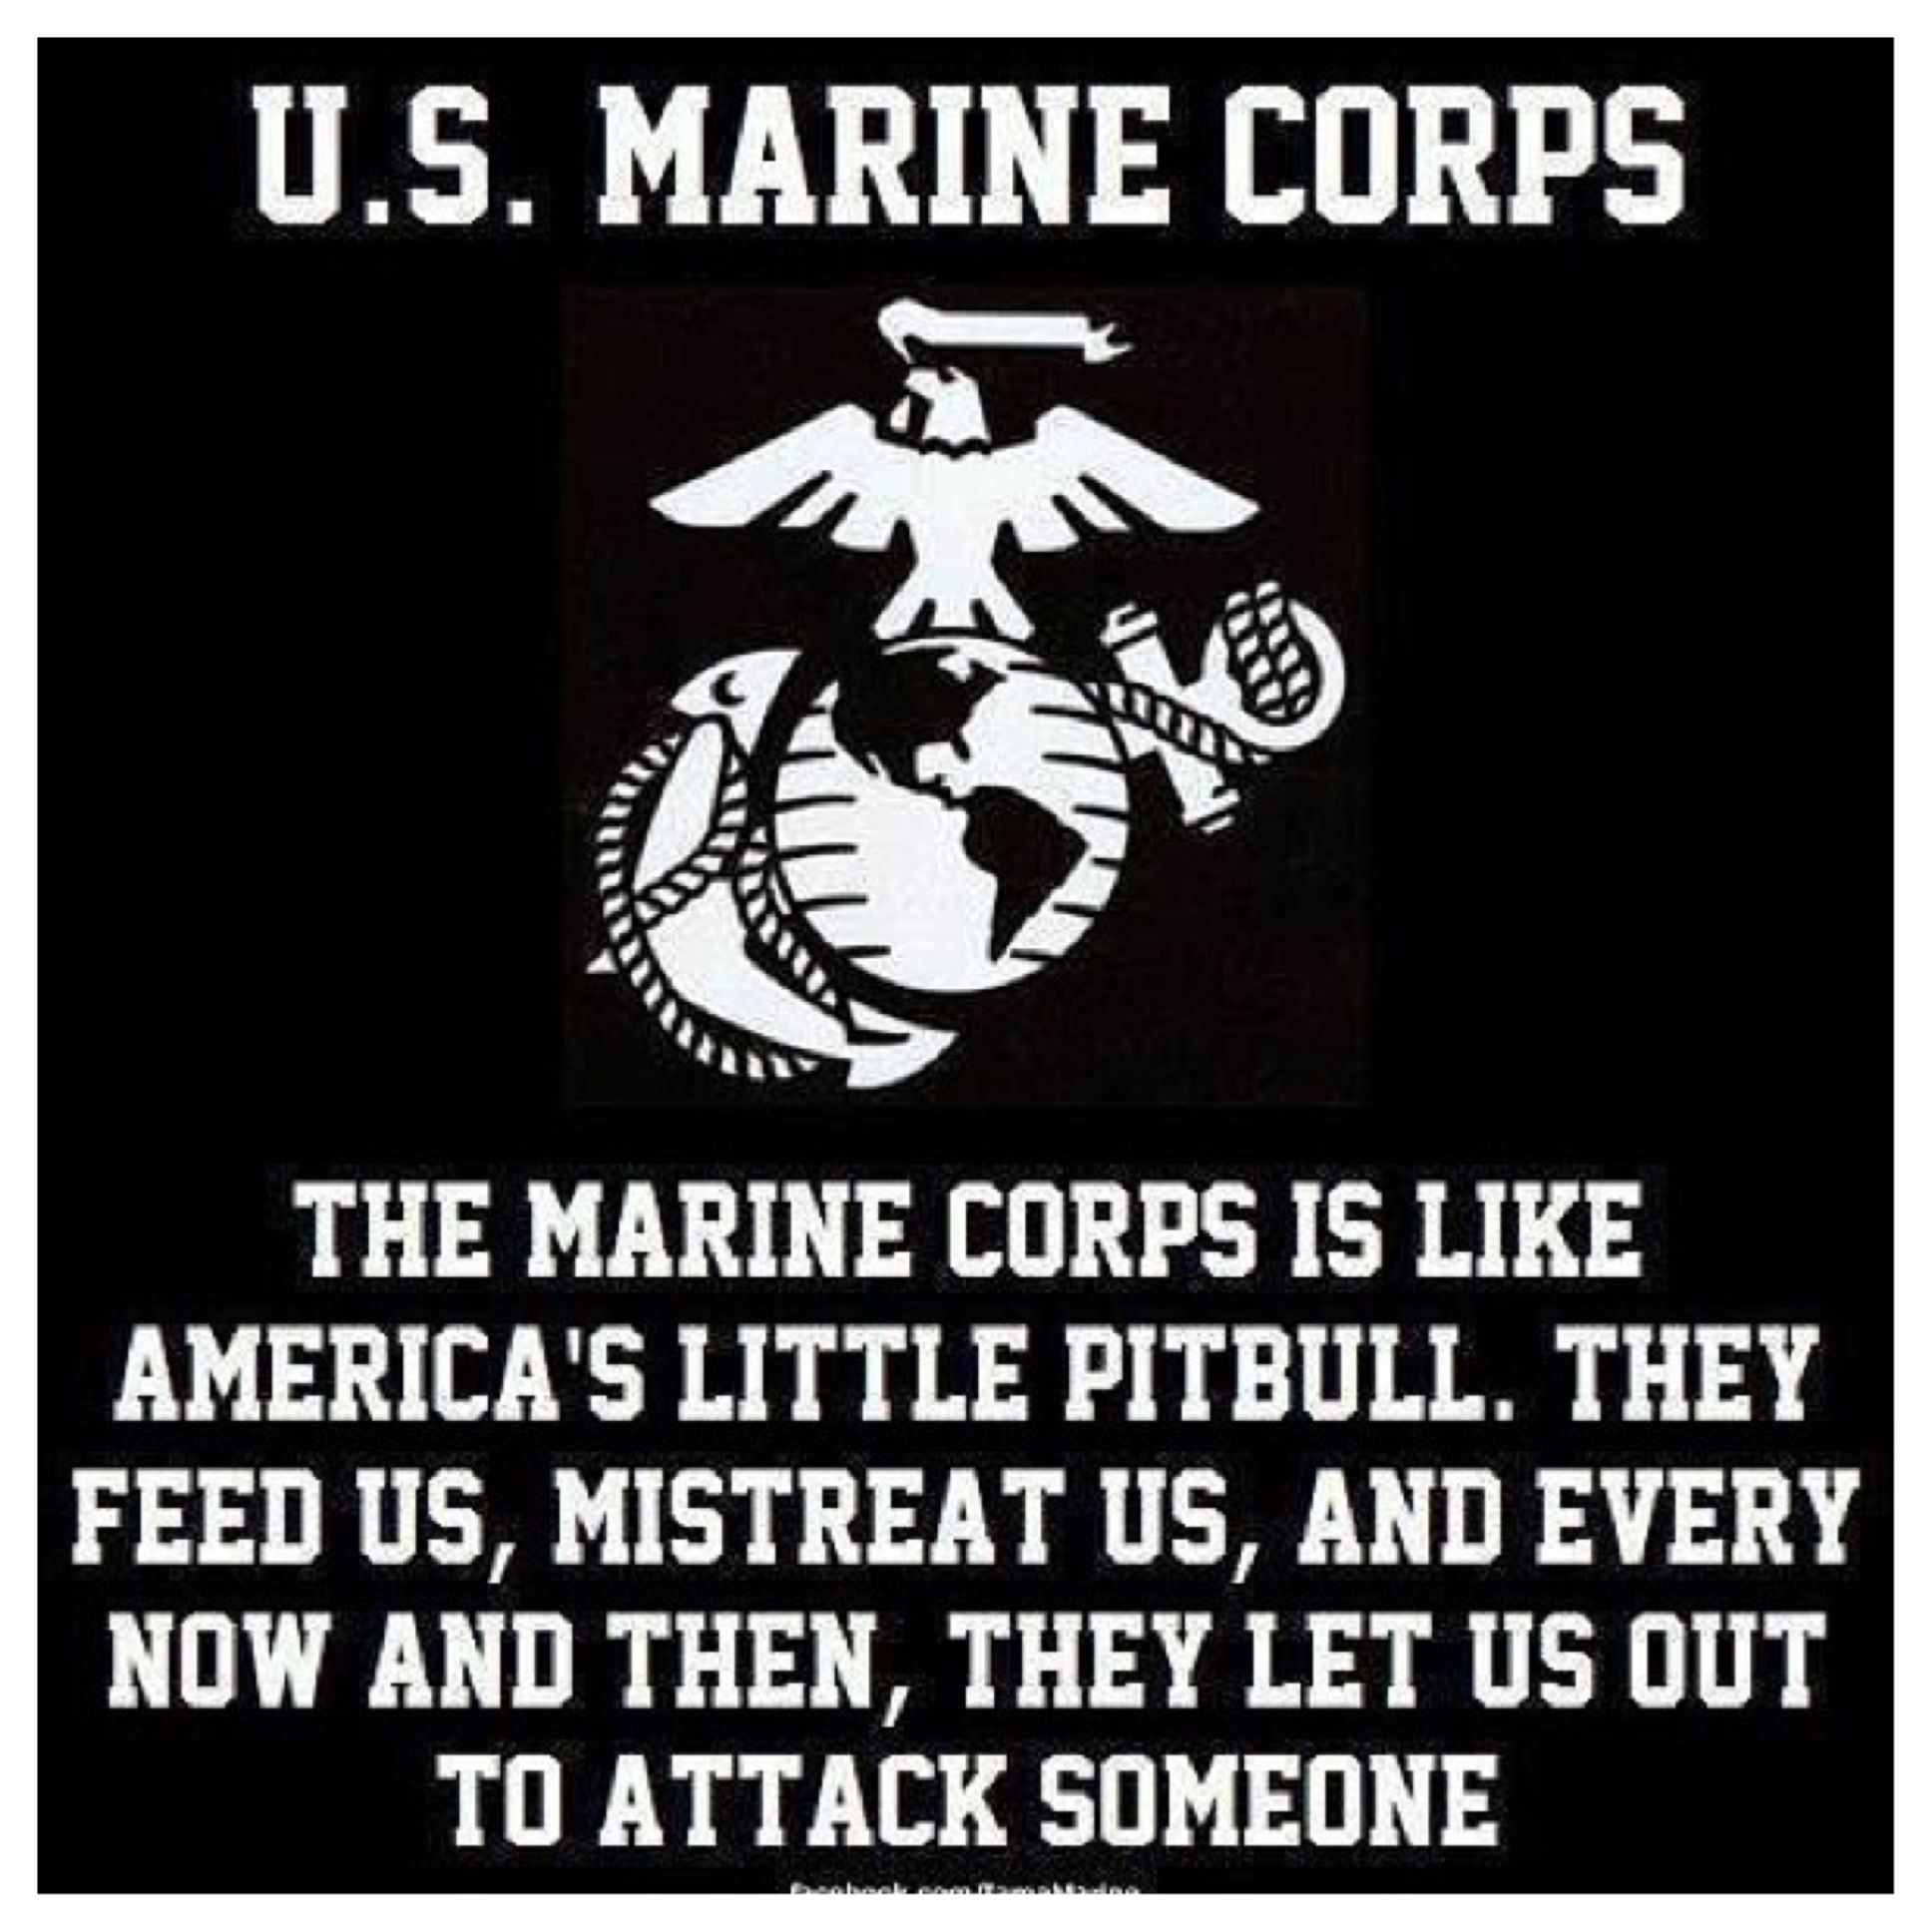 Marines Quotes Glamorous J.b.atlsuperman  Instagram Photos And Videos  Marine Corps . Review